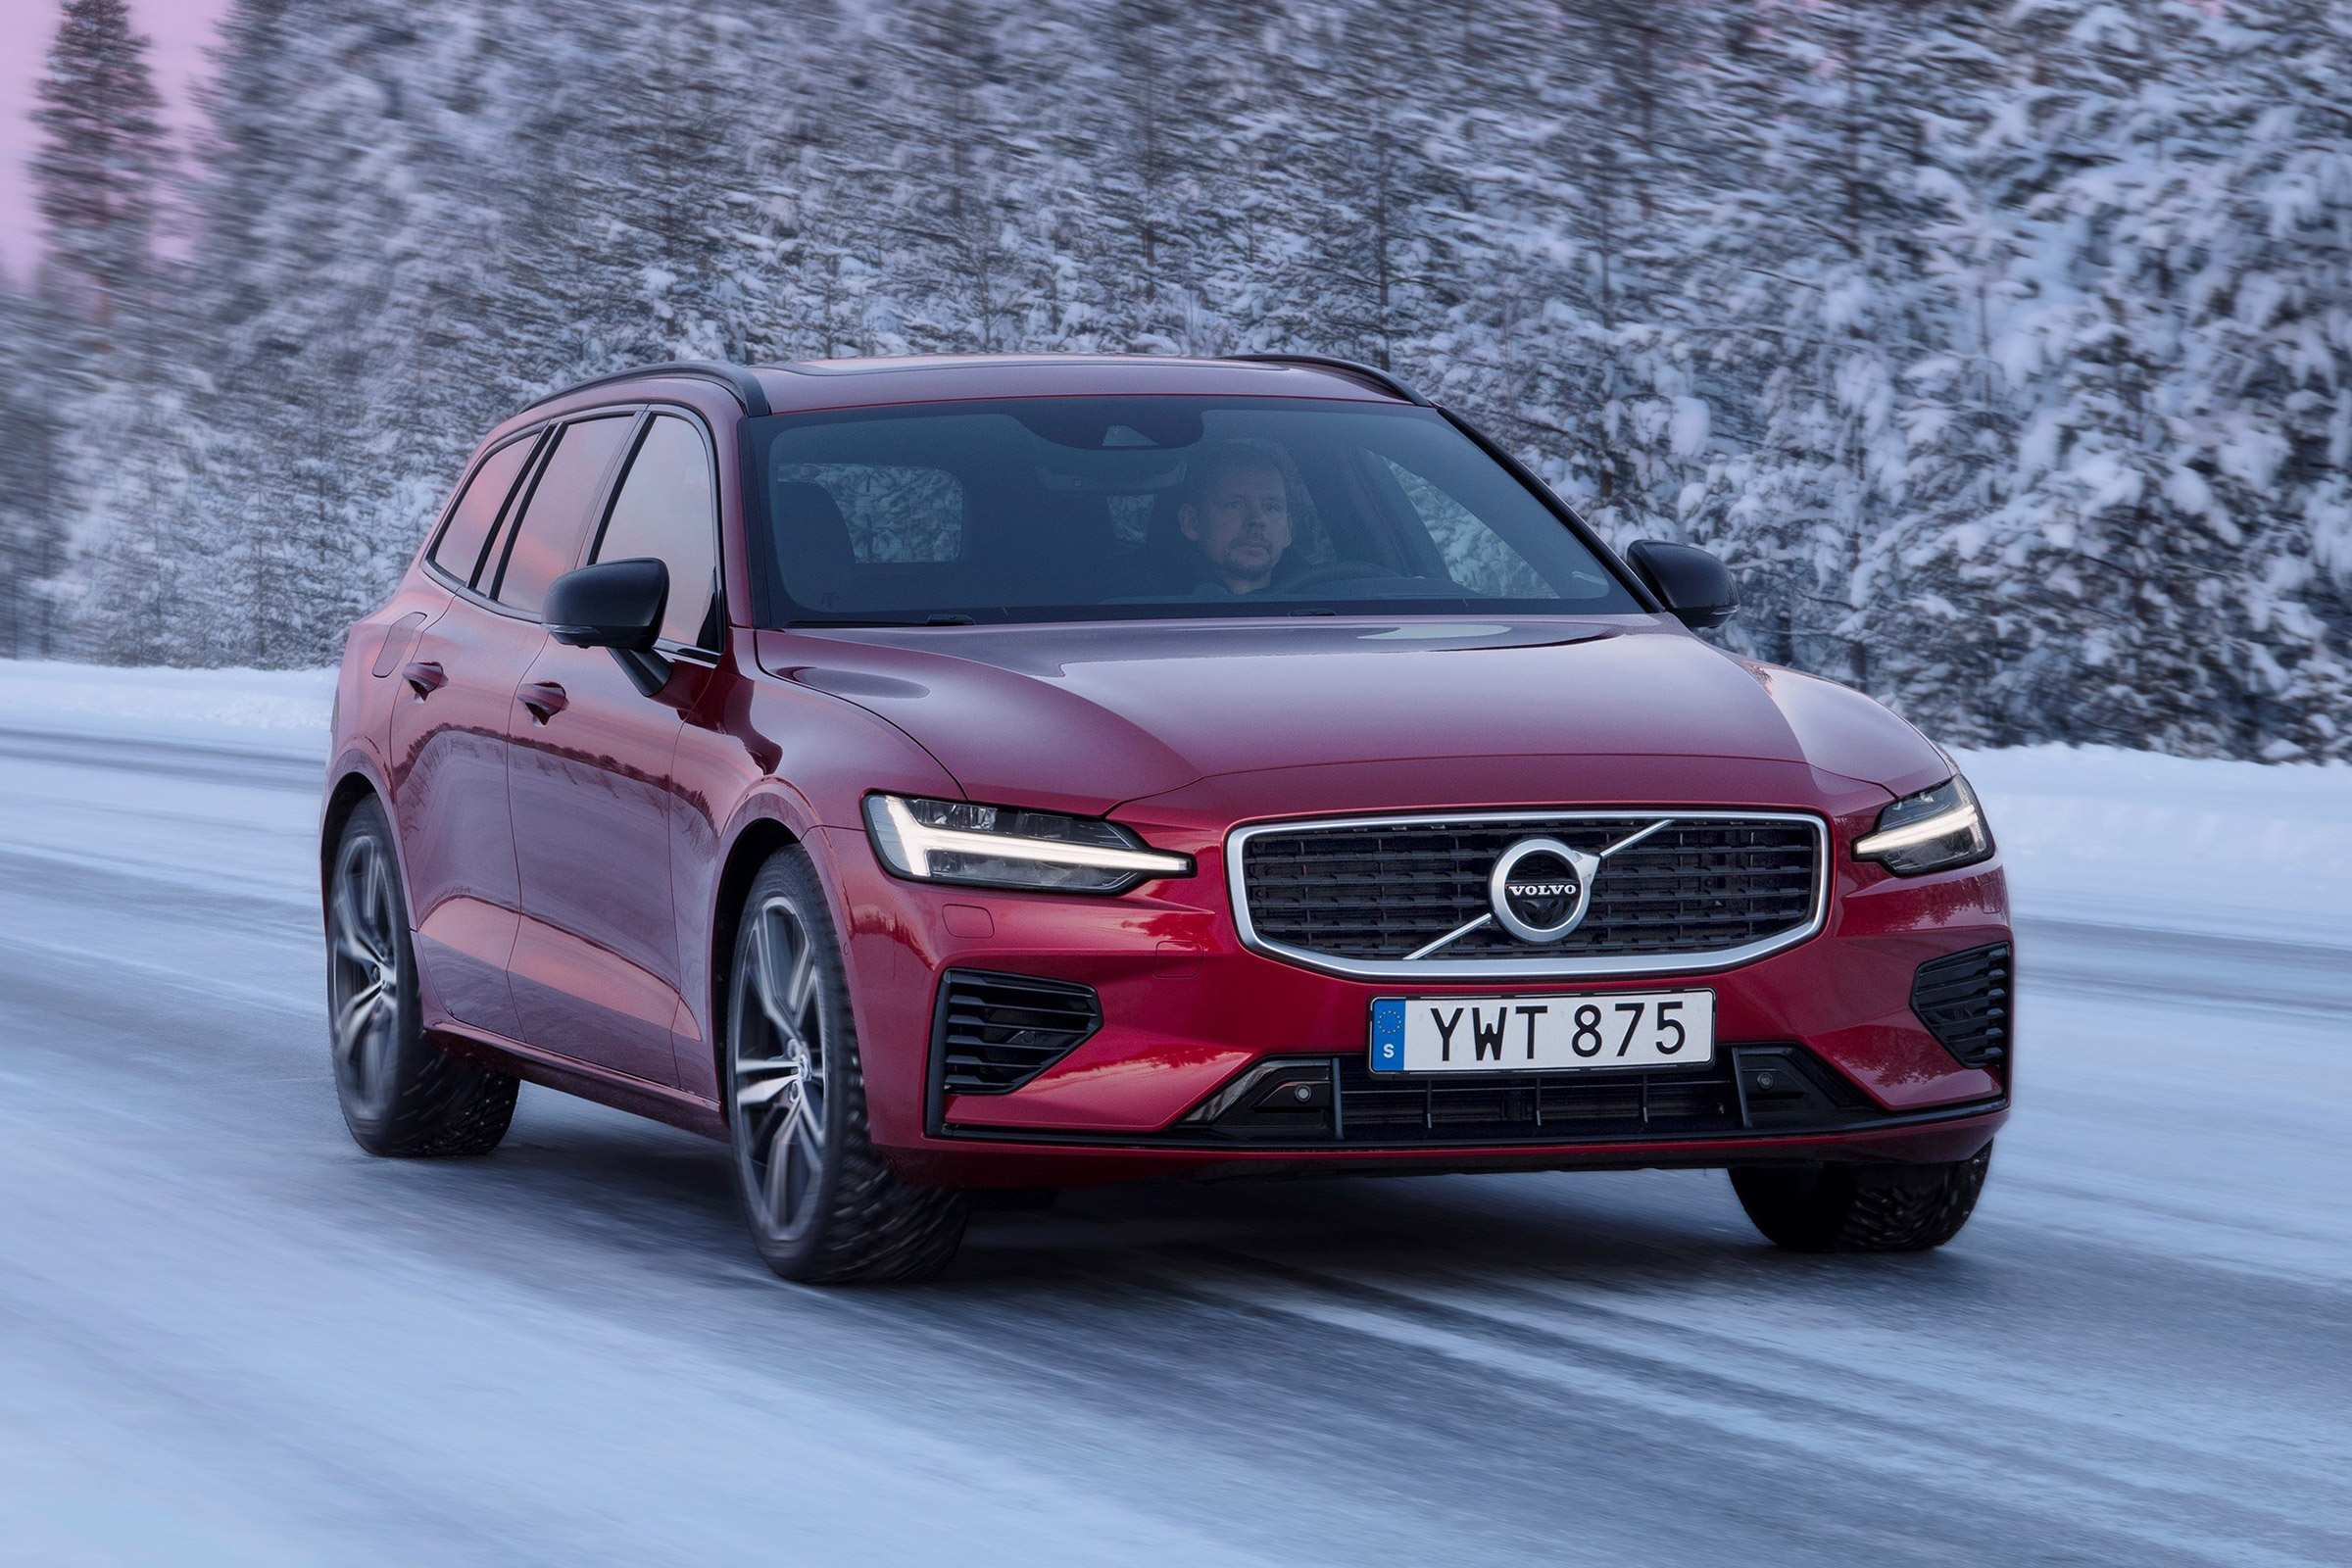 56 All New Best Volvo Plug In 2019 Redesign Price And Review Release with Best Volvo Plug In 2019 Redesign Price And Review